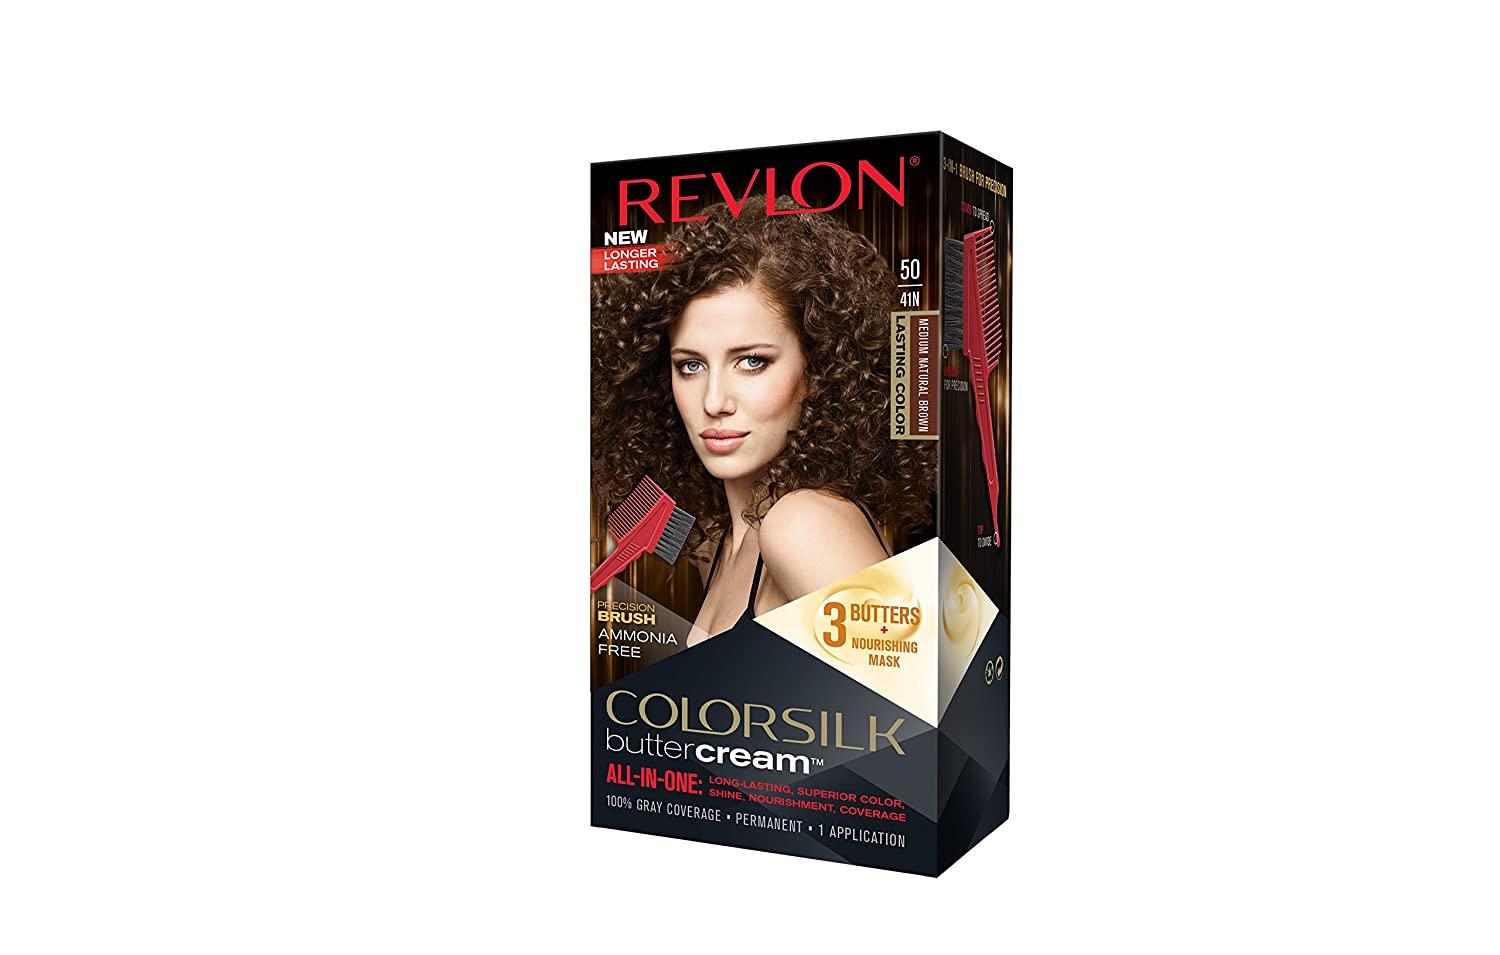 Revlon Colorsilk Buttercream Hair Dye, Medium Natural Brown, Pack of 1